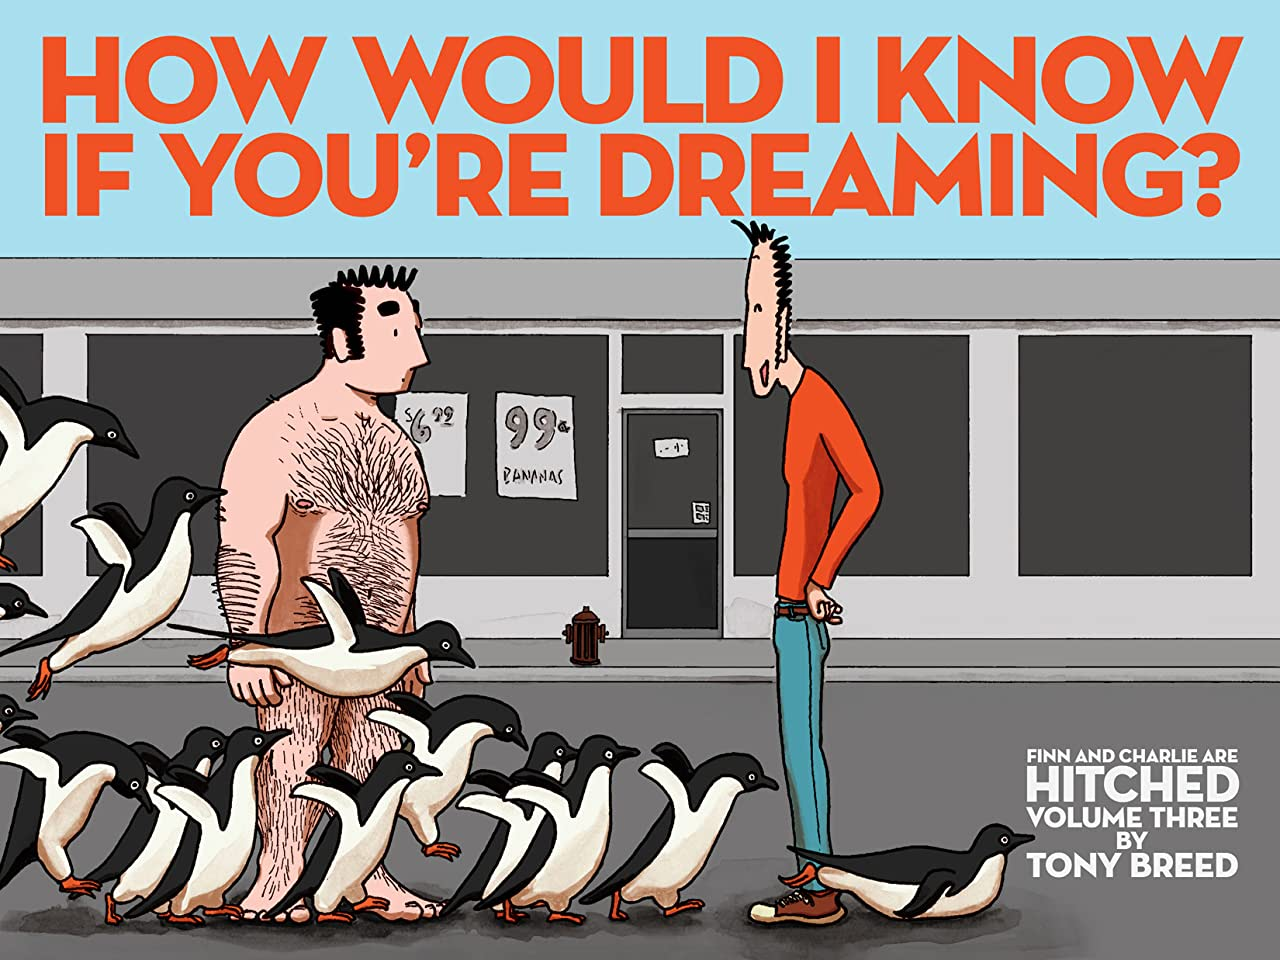 Finn and Charlie are Hitched Vol. 3: How Would I Know if You're Dreaming?